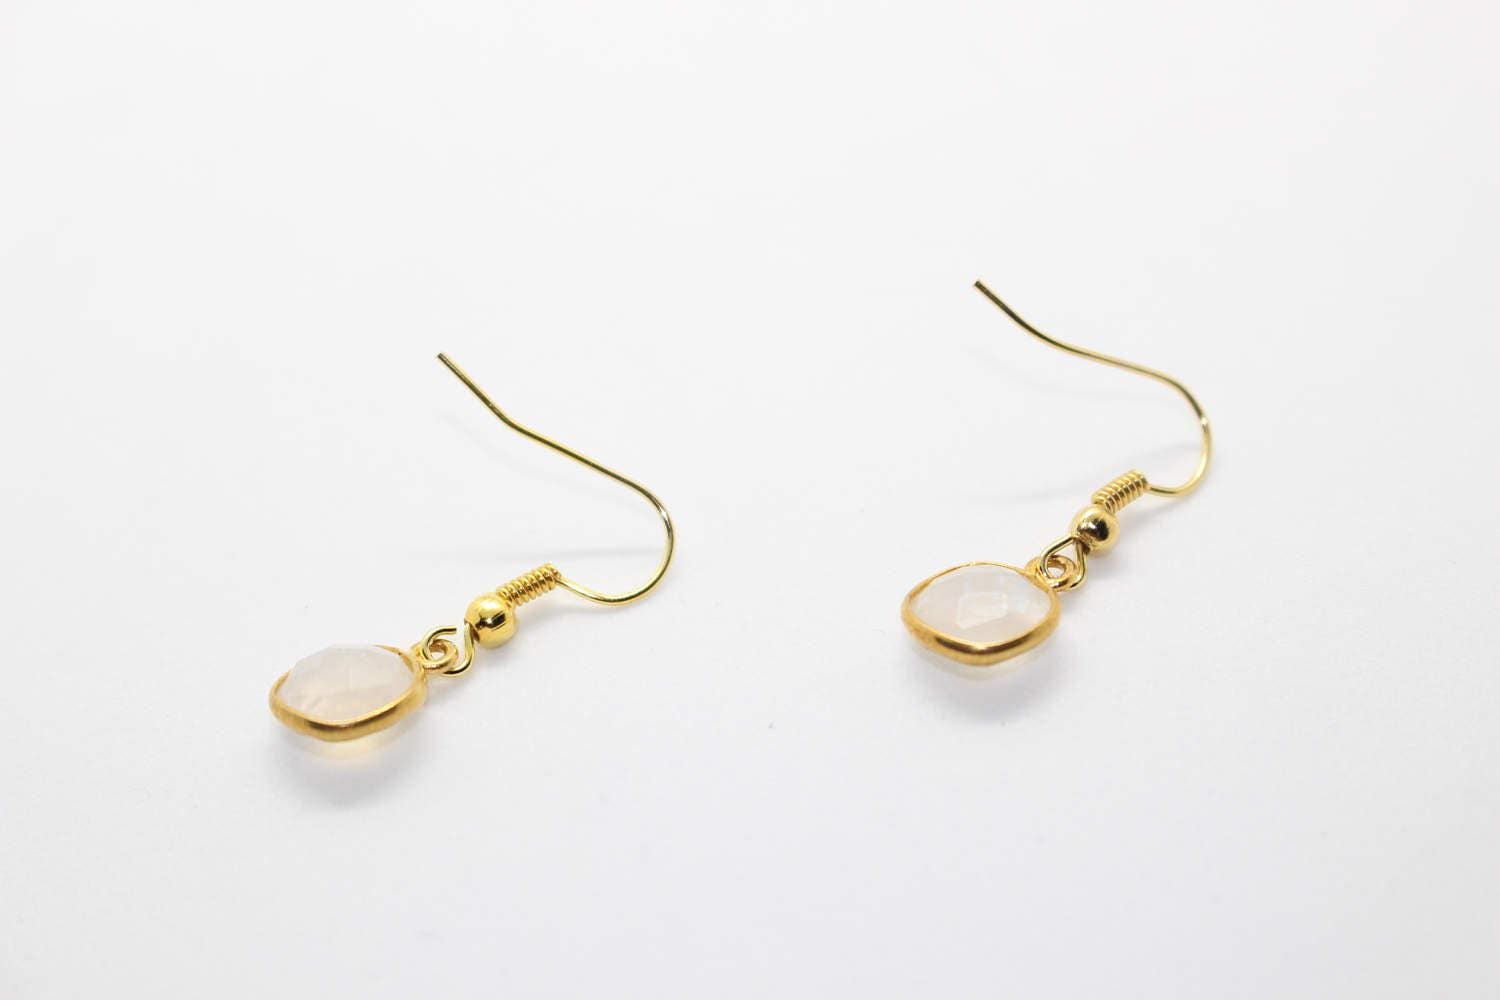 lala gold jewelry young fashion snake dainty everyday rose lyoung products l earrings designer